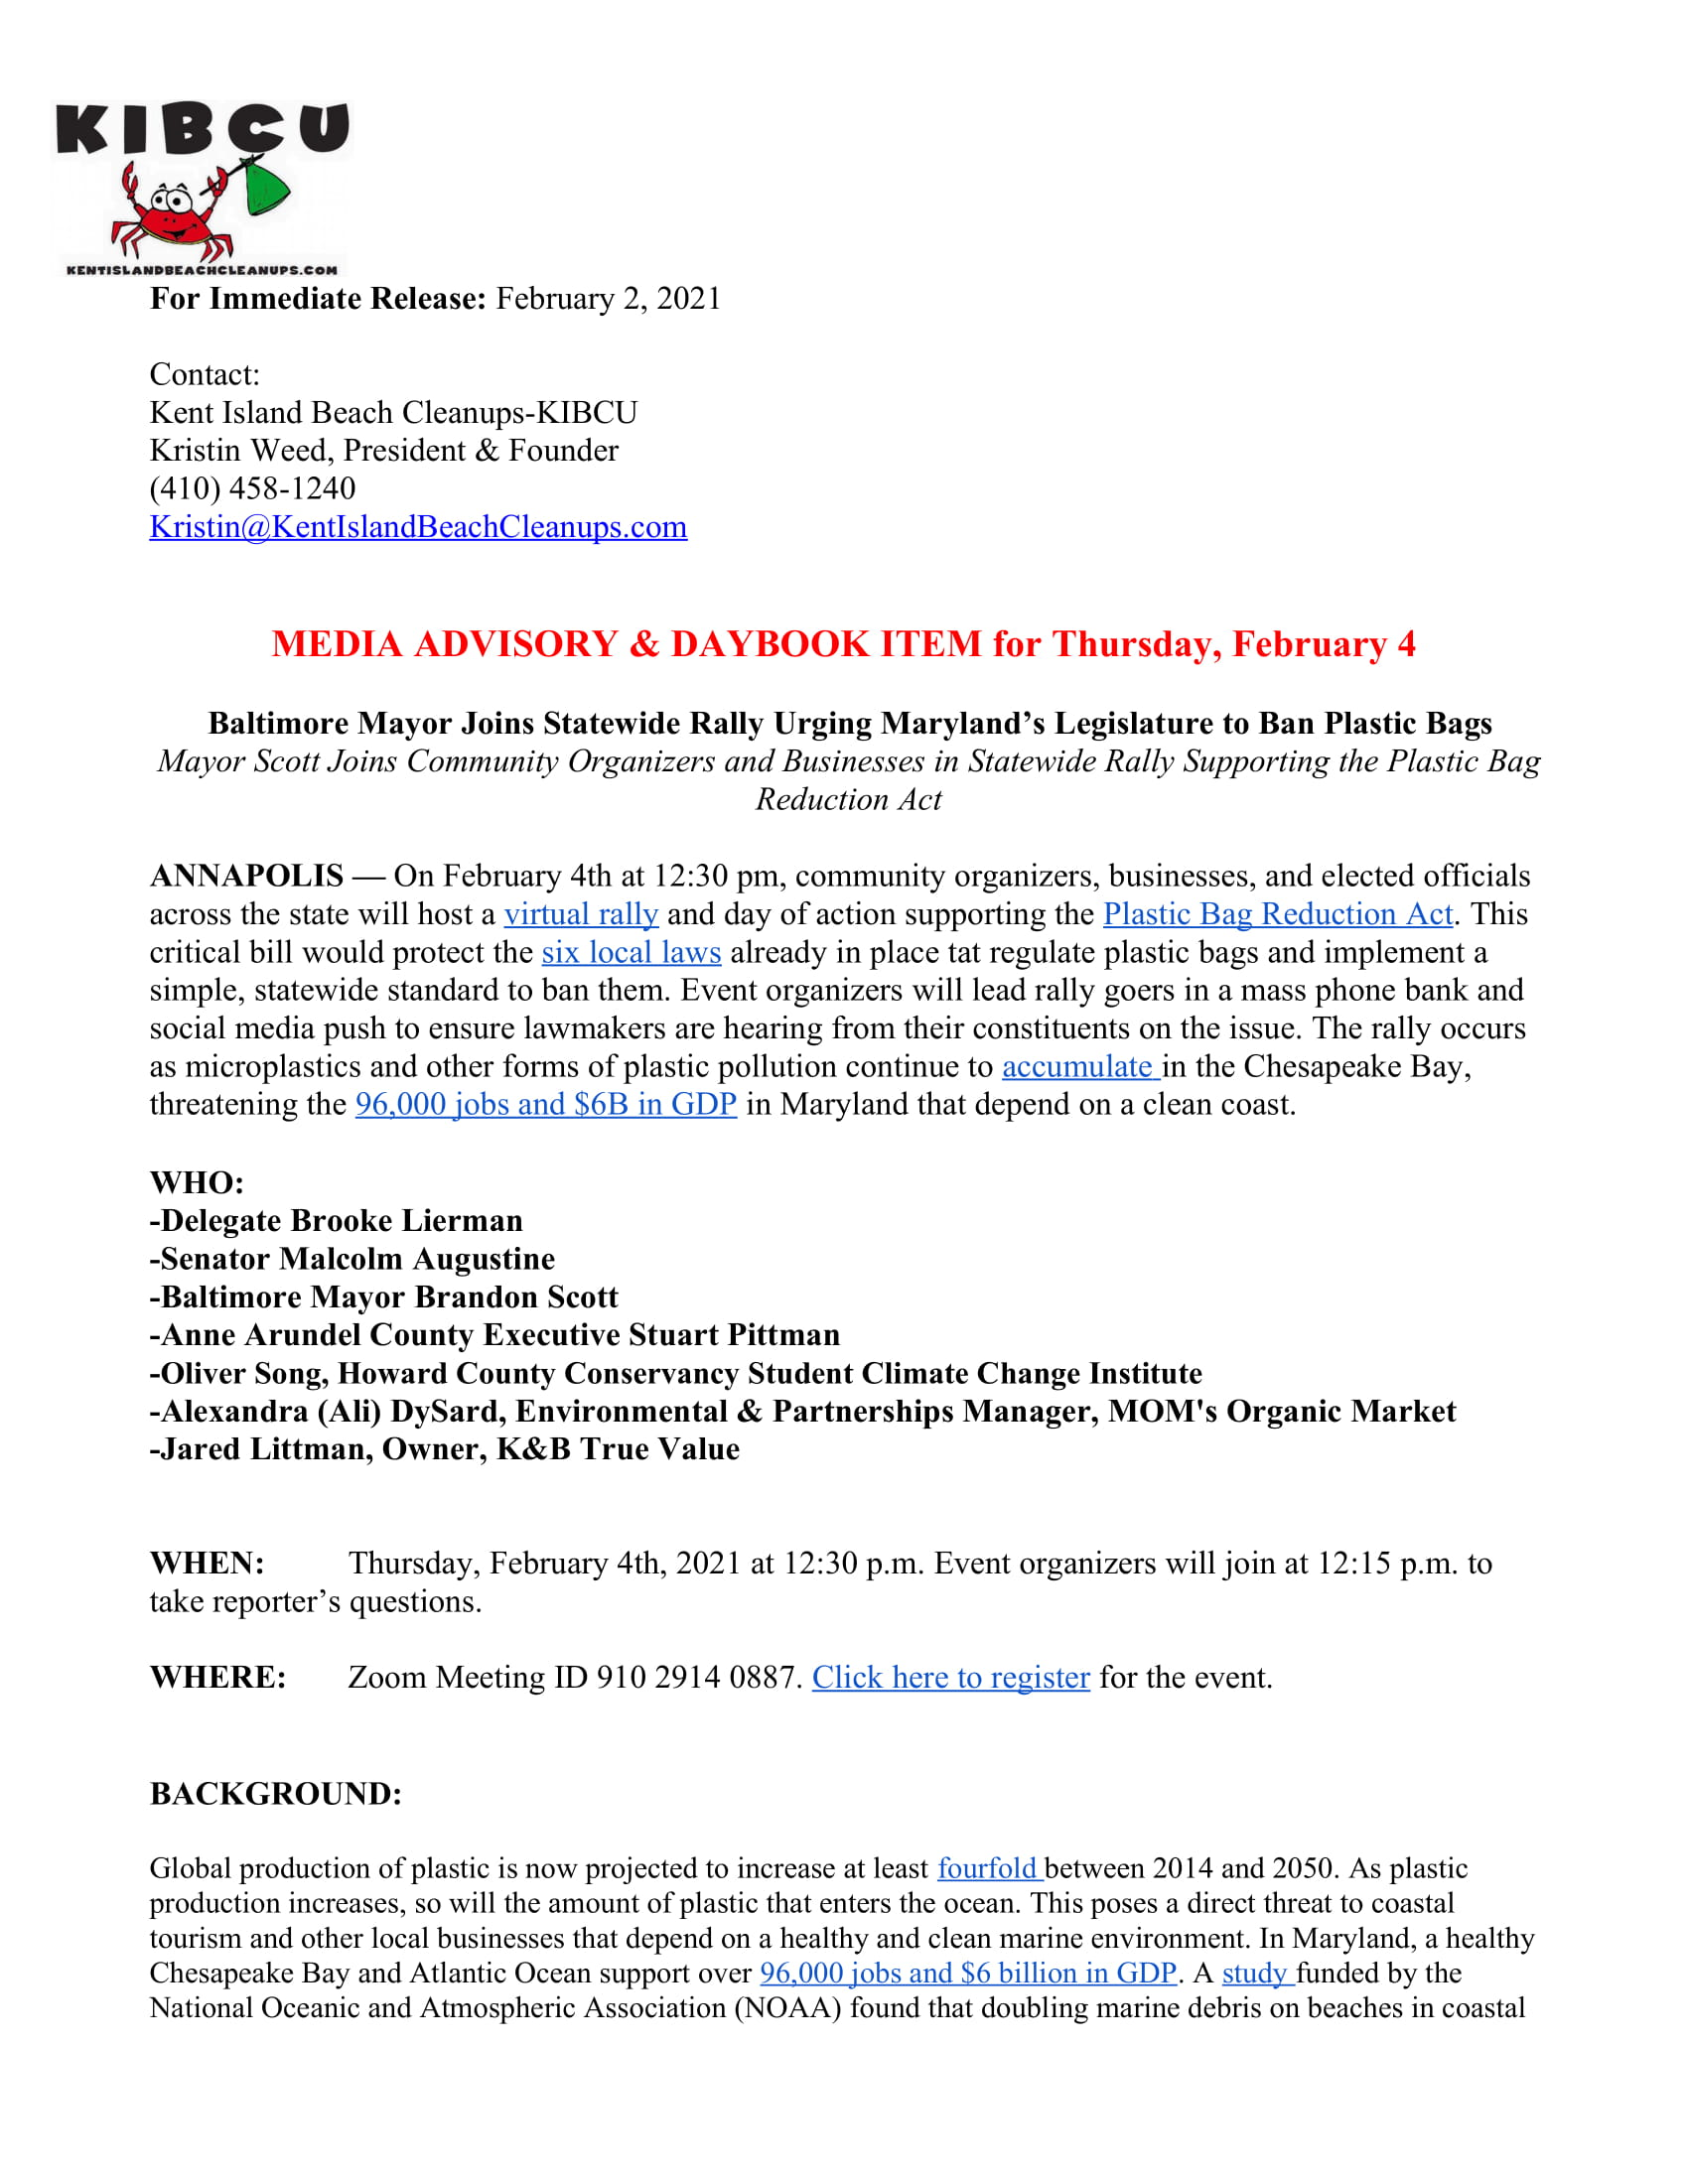 Bag Ban Rally Media Advisory - 2.2.21